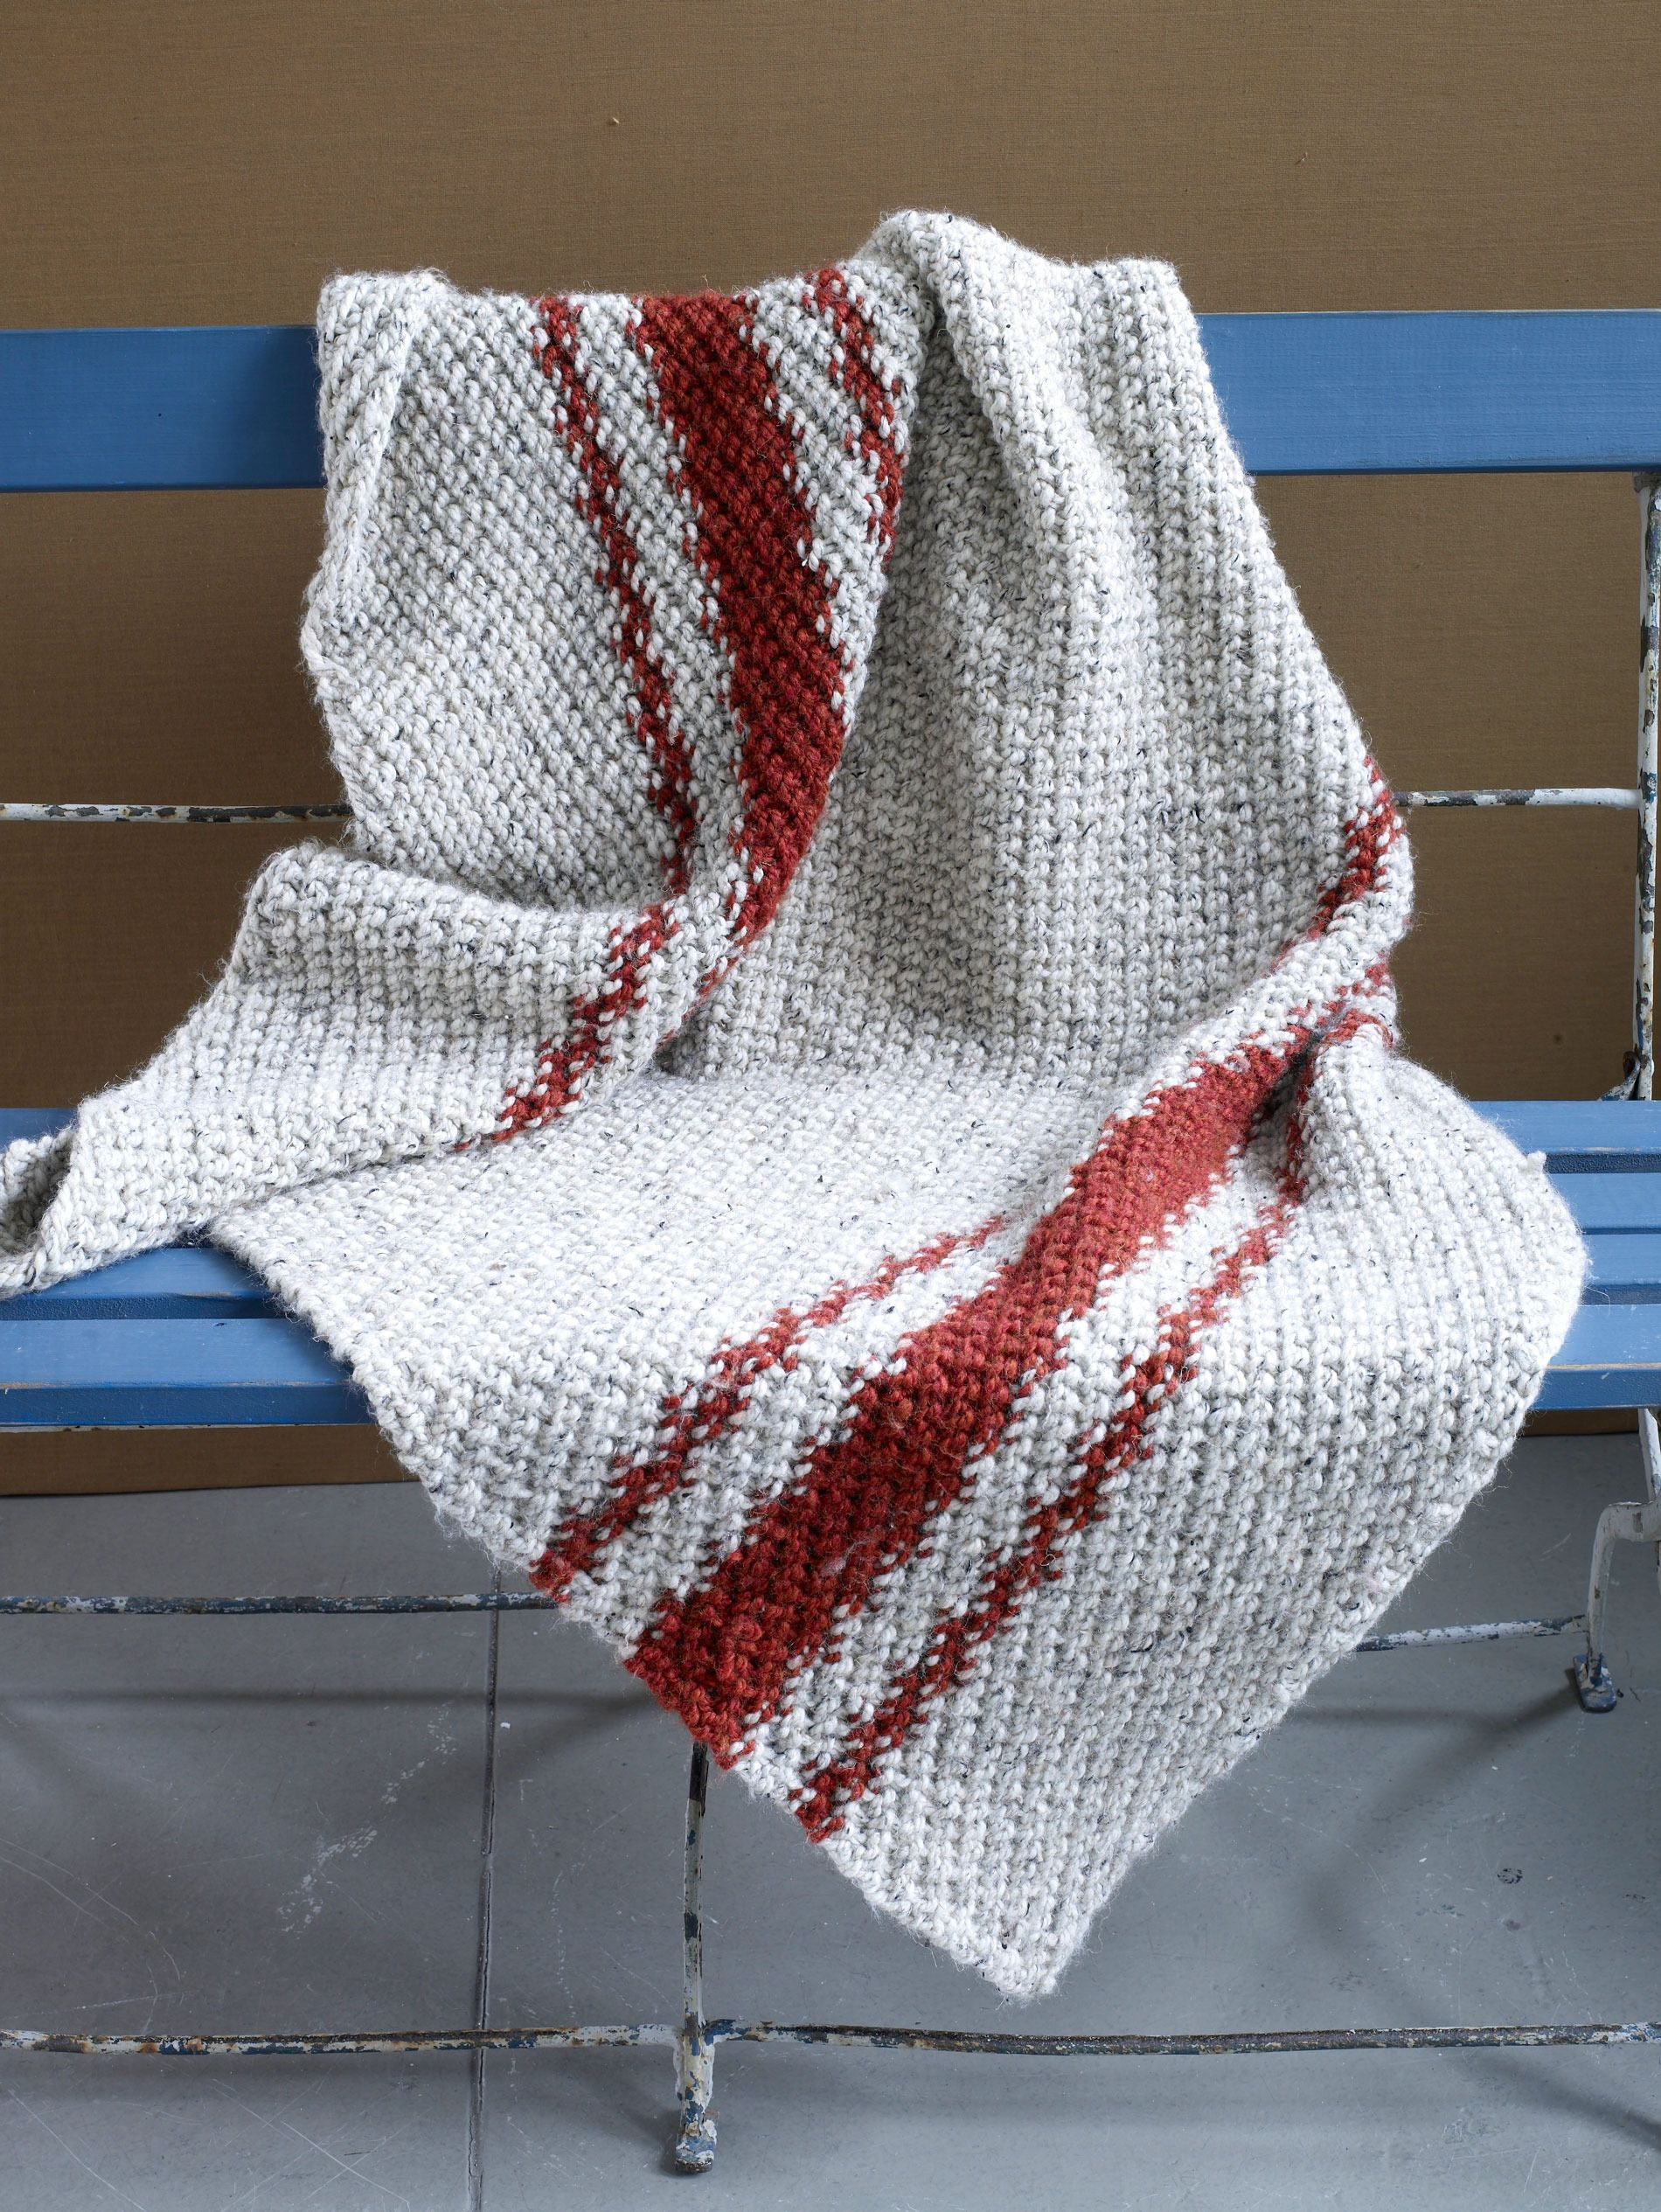 7 FREE patterns to knit for charity | Free pattern, Blanket and Patterns